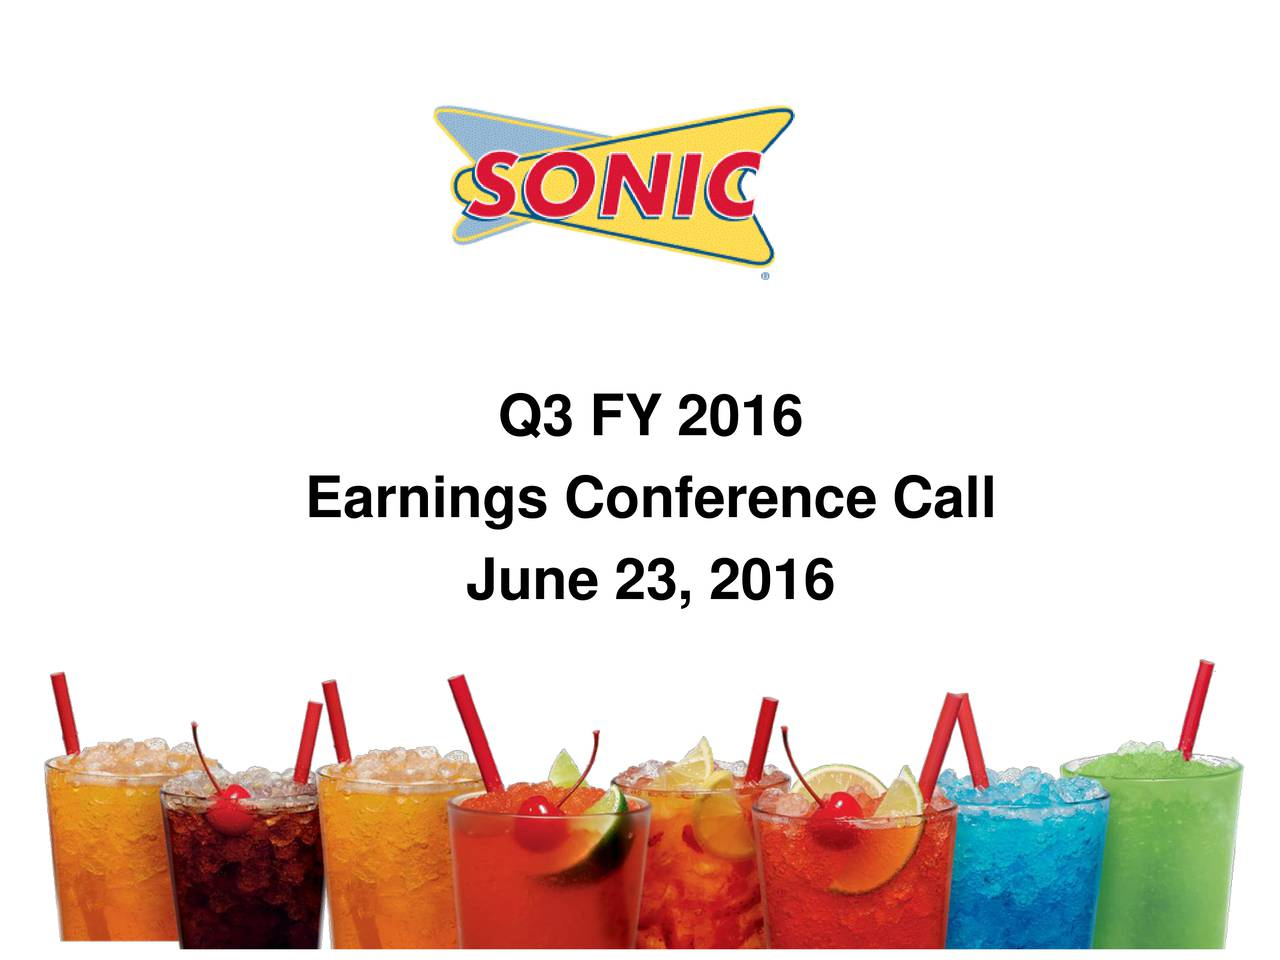 Earnings Conference Call June 23, 2016